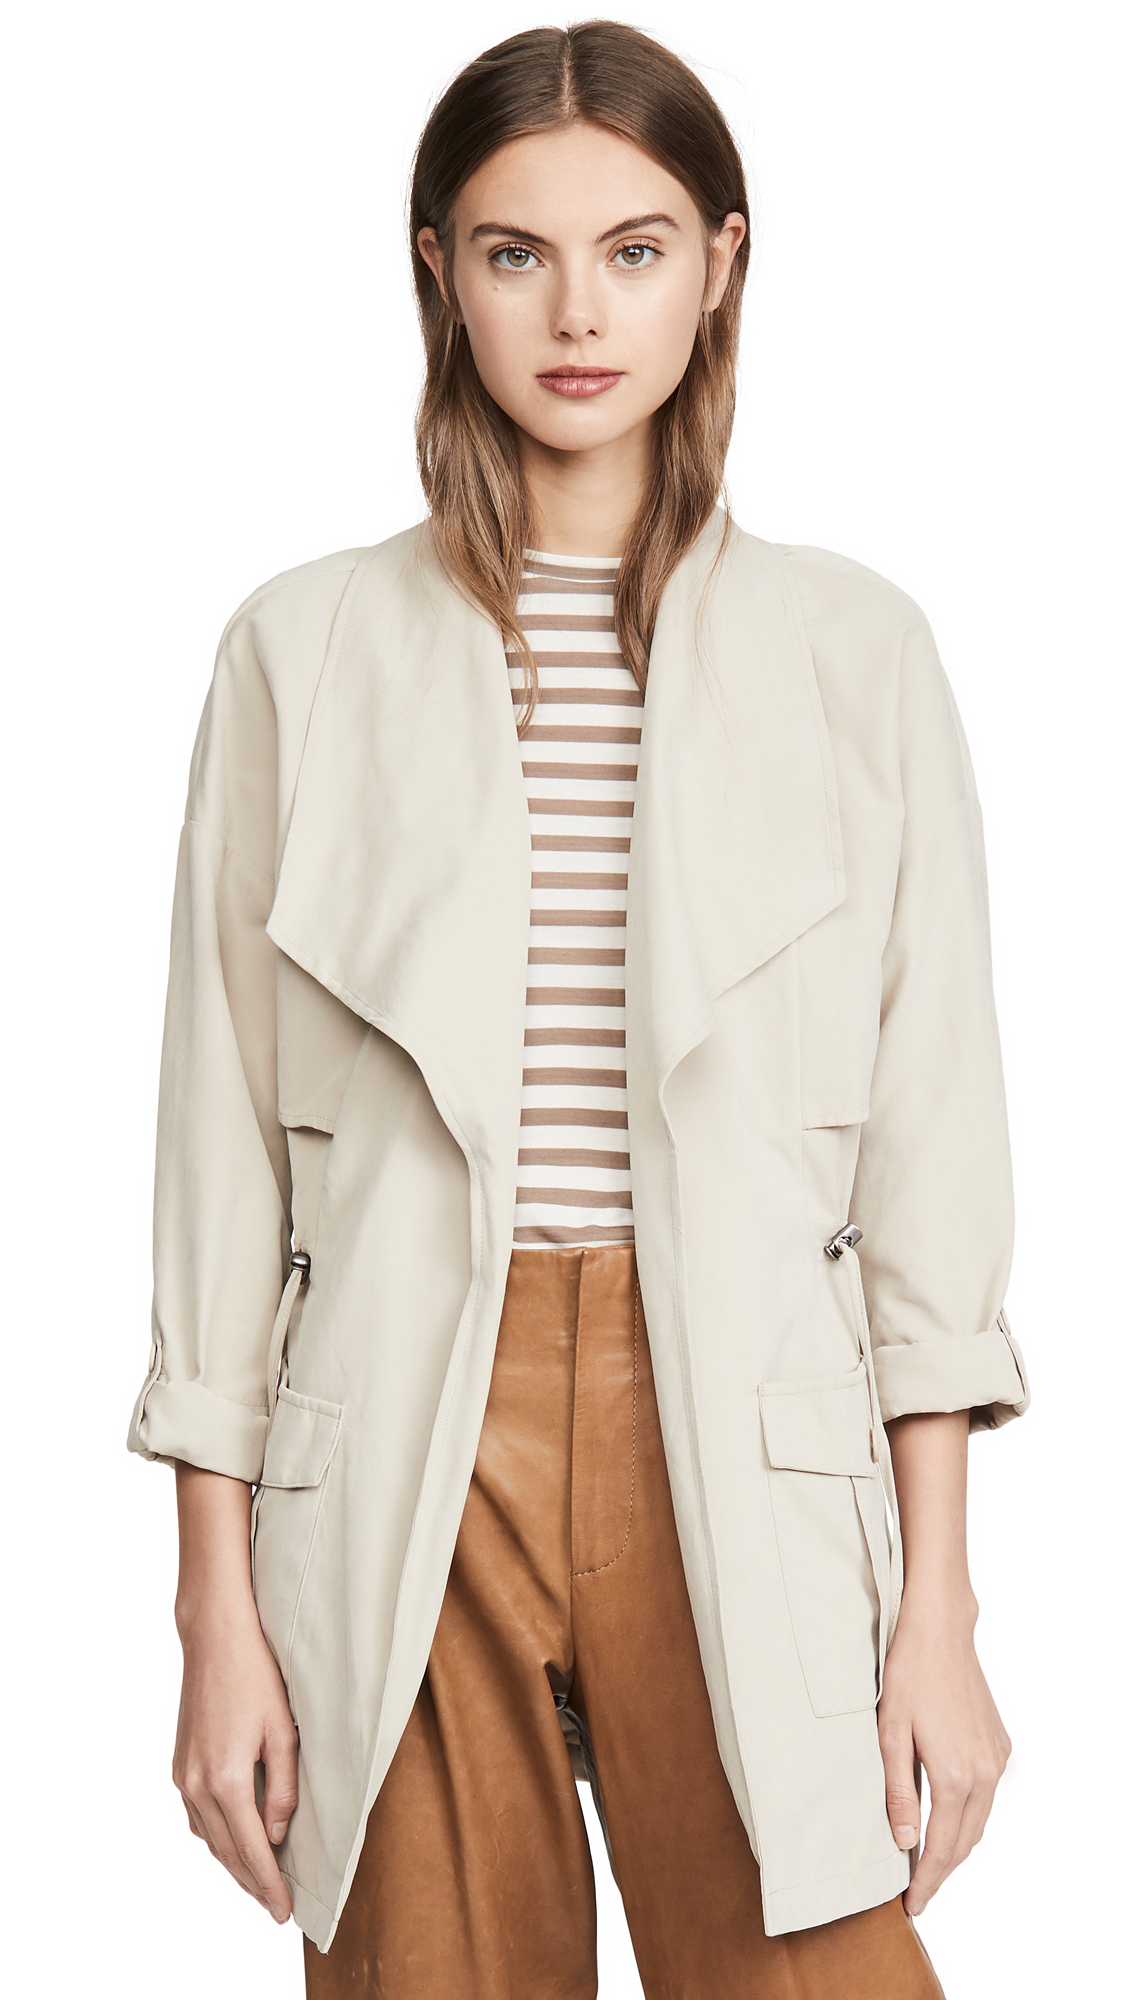 Buy BB Dakota Jack By BB Dakota Cover Story Jacket online beautiful BB Dakota Jackets, Coats, Trench Coats